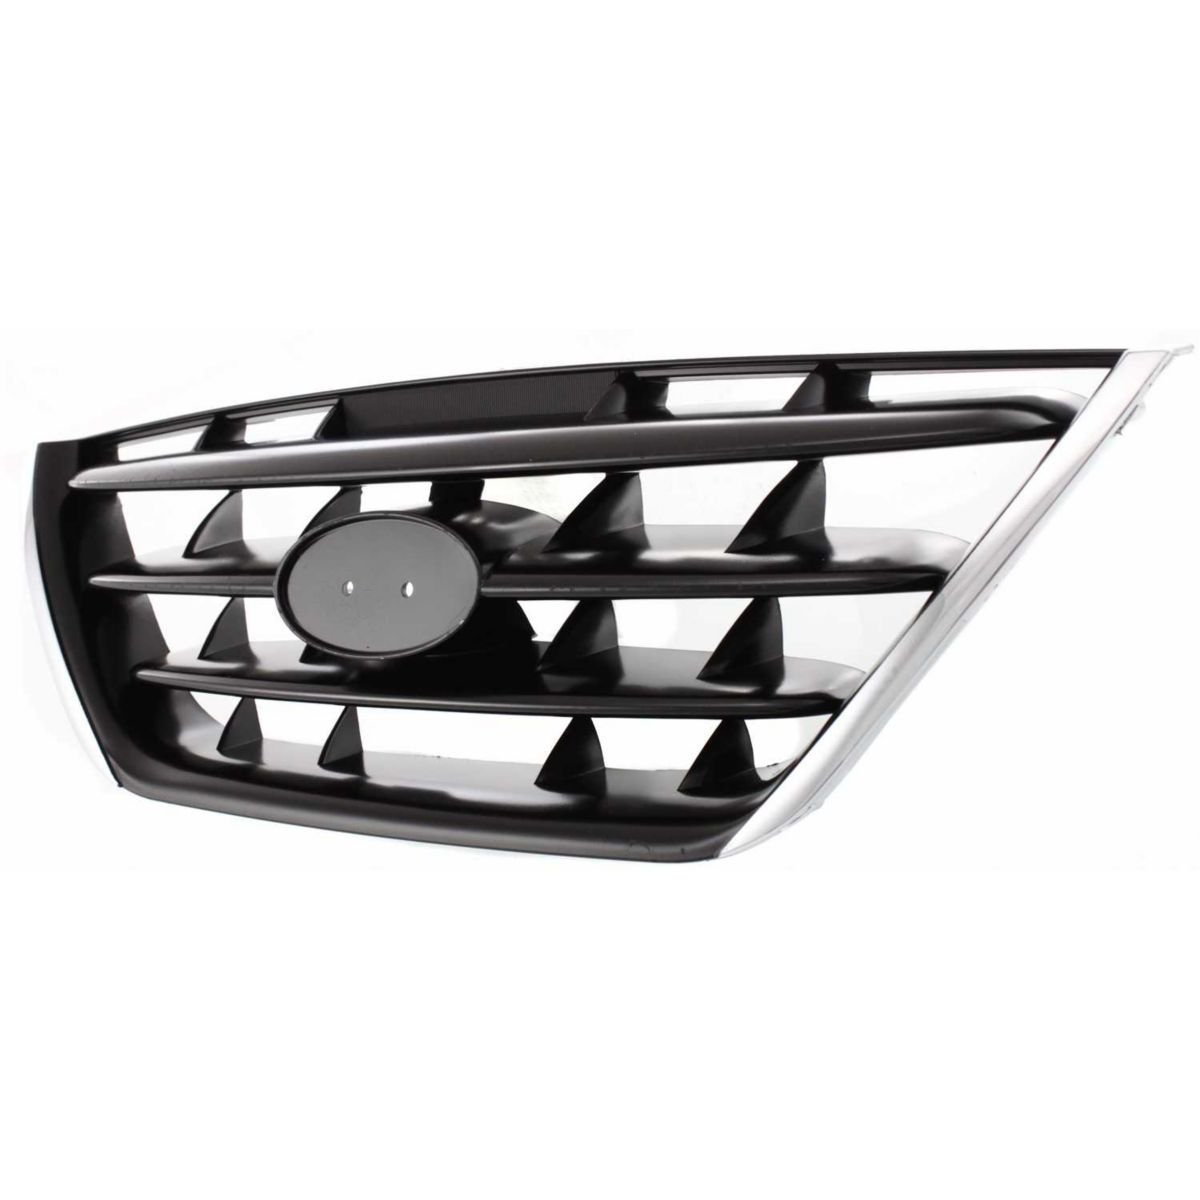 Diften 102-A8297-X01 - New Grille Assembly Grill Chrome shell black insert HY1200140 863602D500